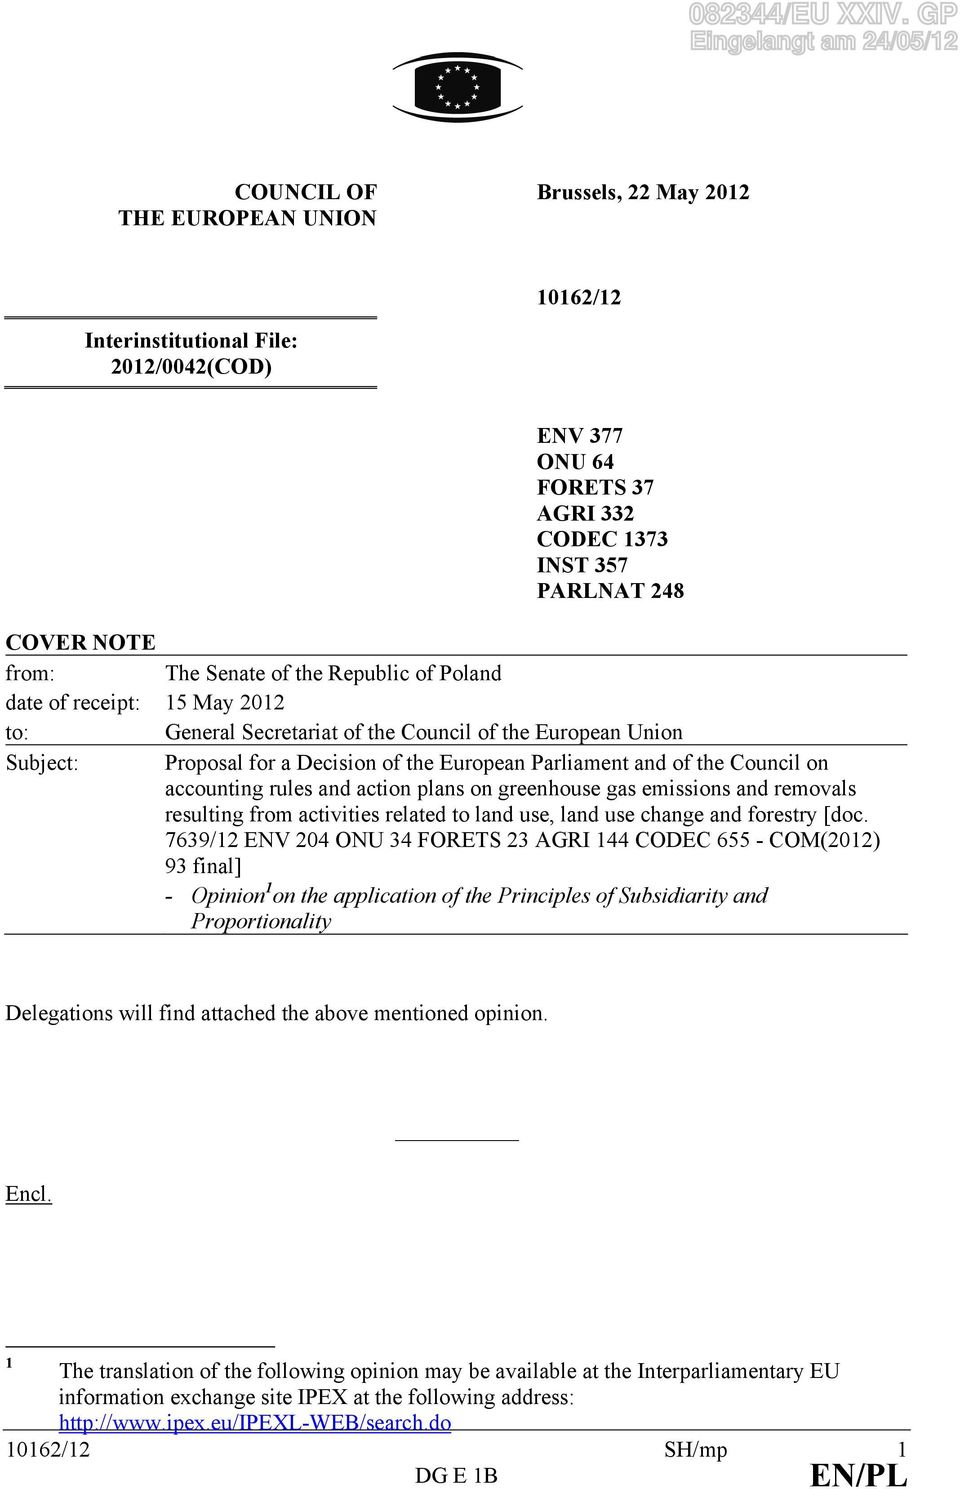 NOTE from: The Senate of the Republic of Poland date of receipt: 15 May 2012 to: General Secretariat of the Council of the European Union Subject: Proposal for a Decision of the European Parliament